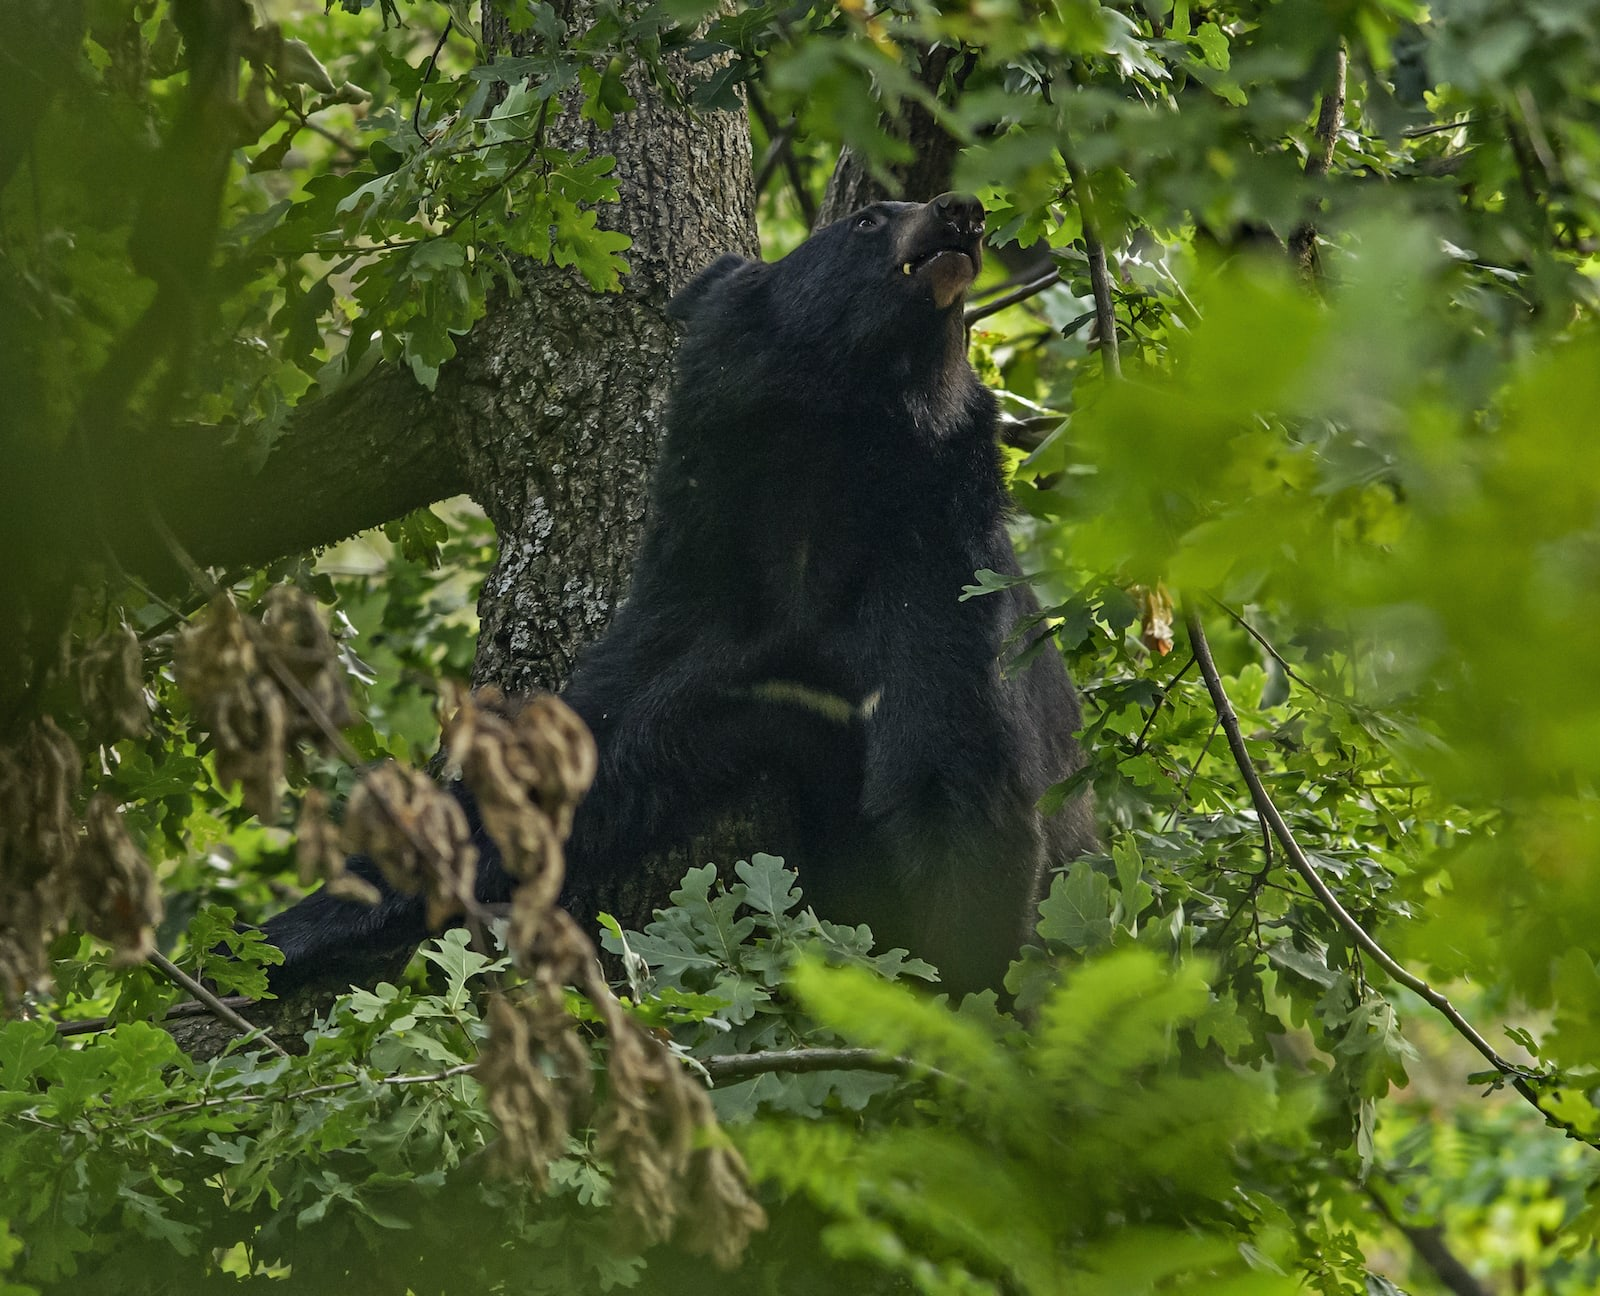 Unfortunately for the Asiatic bears, their habitat is shrinking. In a study by Sitaram Phuyal, the Nepali author cites two primary threats to their ecosystem: natural events such as landslides, forest fires, erosion, and climate change; and manmade factors, including deforestation and woodland degradation, over grazing, shifting cultivation, and the over-consumption of plants favoured by the Himalayan black bear.